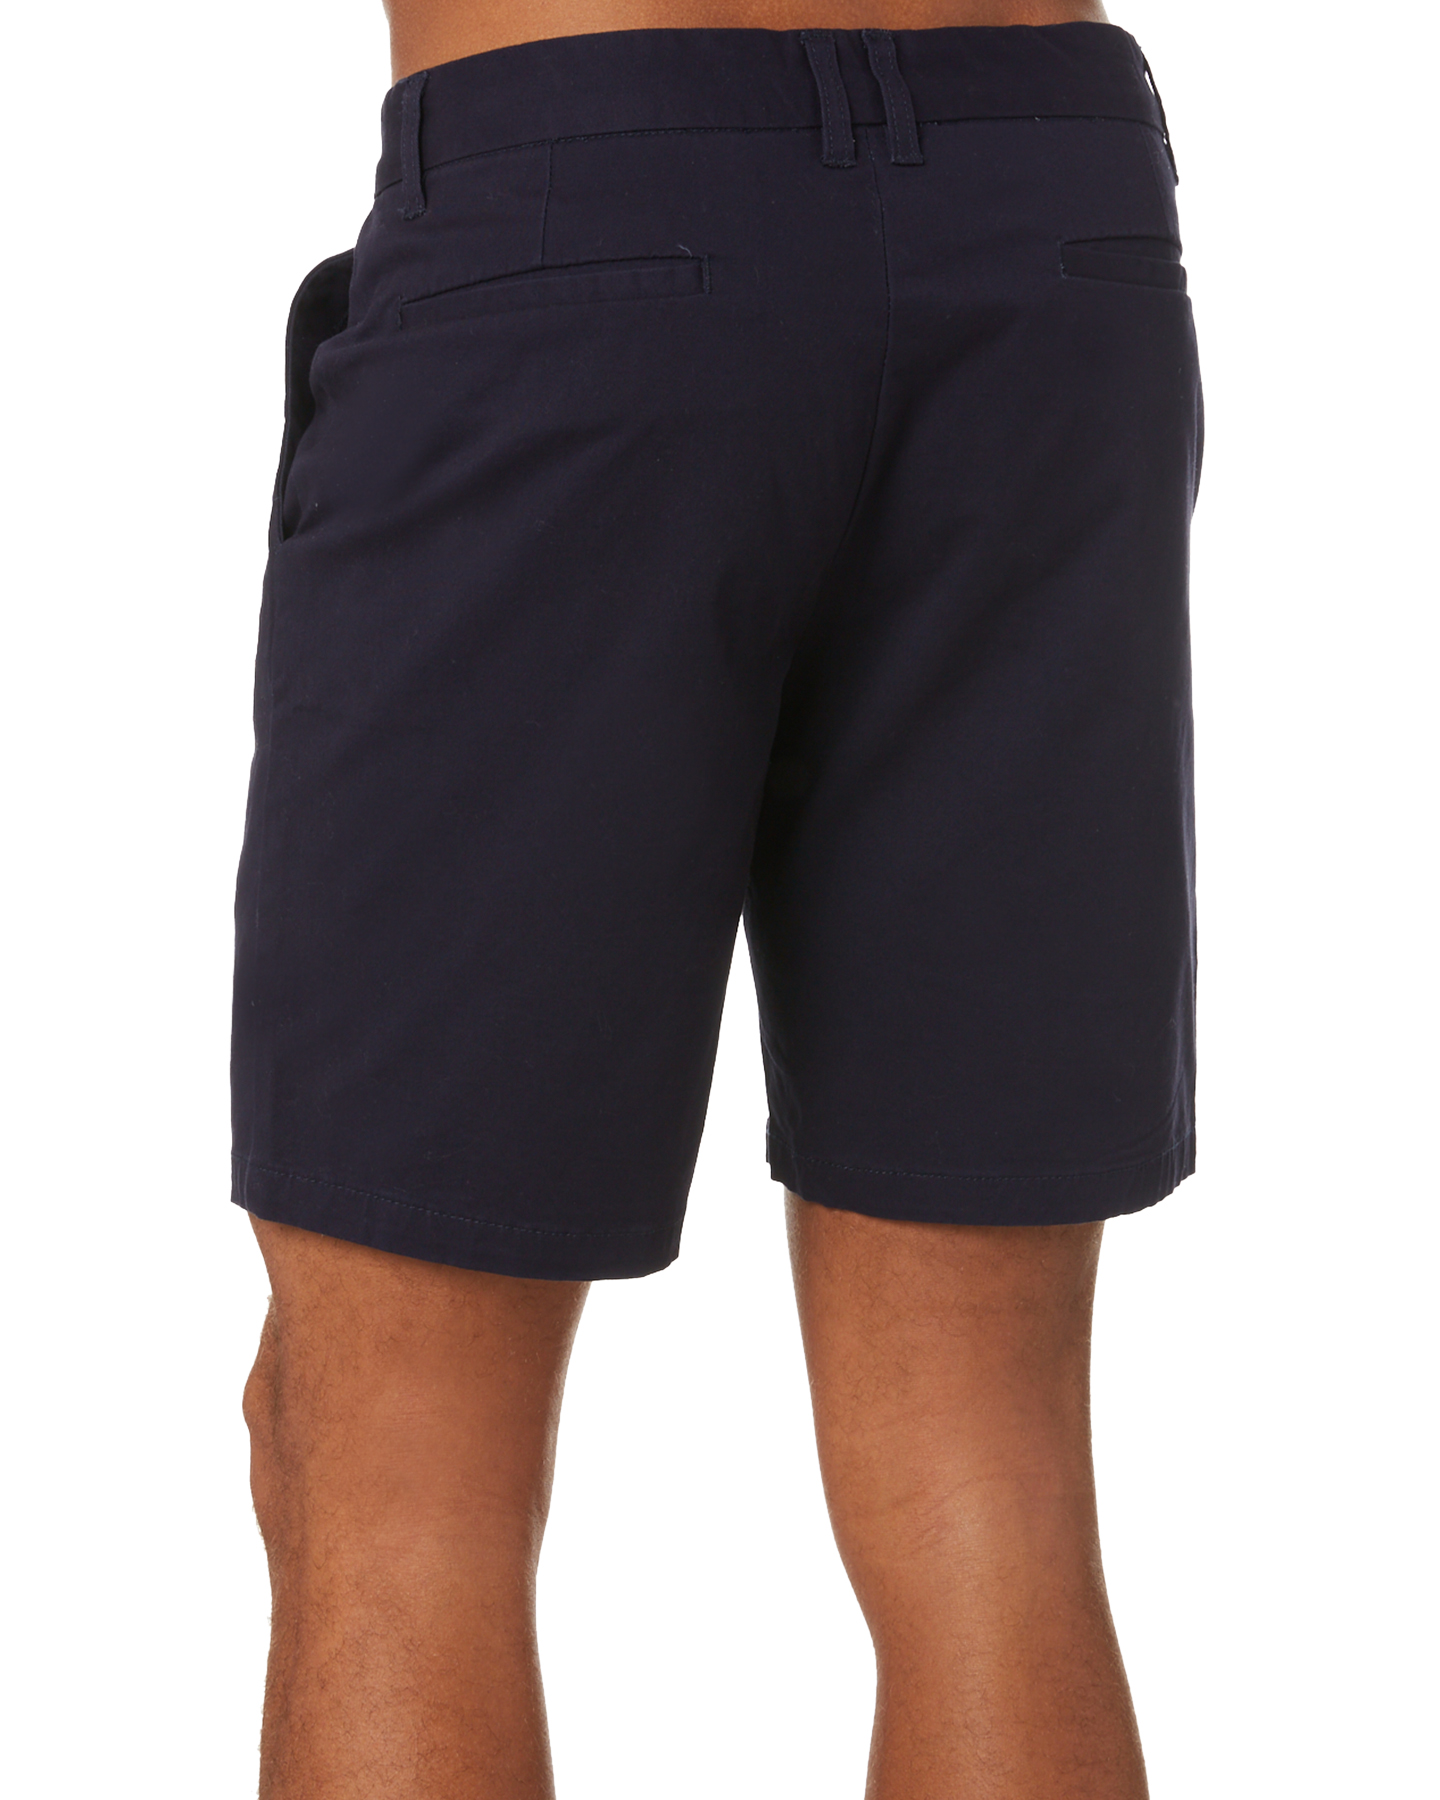 New-Swell-Men-039-s-Dandy-Mens-Chino-Short-Cotton-Fitted-Elastane-Blue thumbnail 22